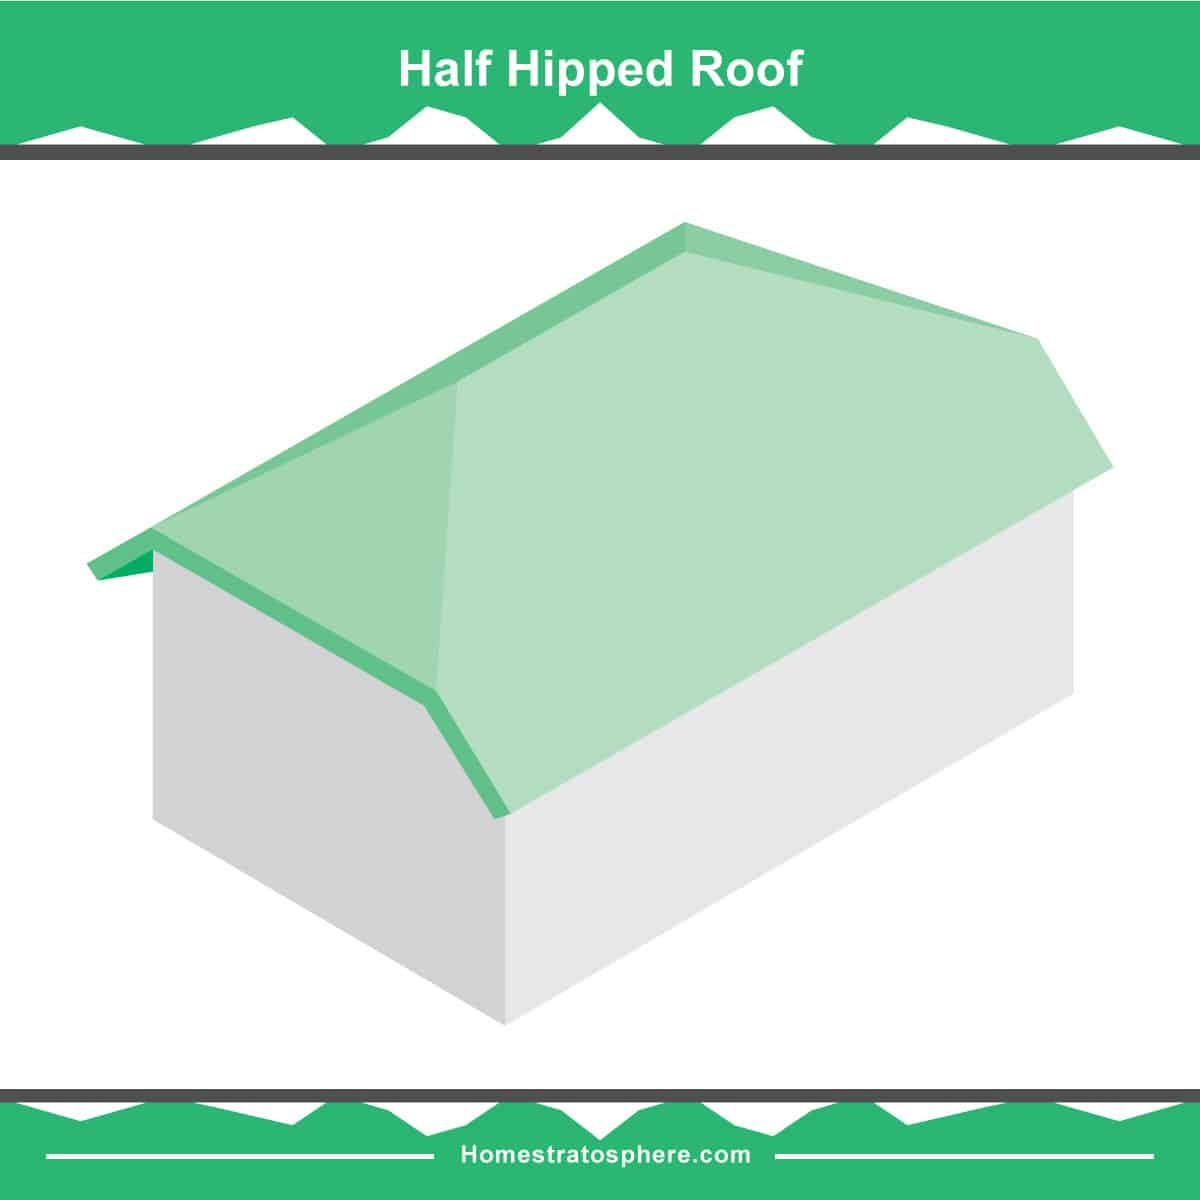 Half-hipped roof